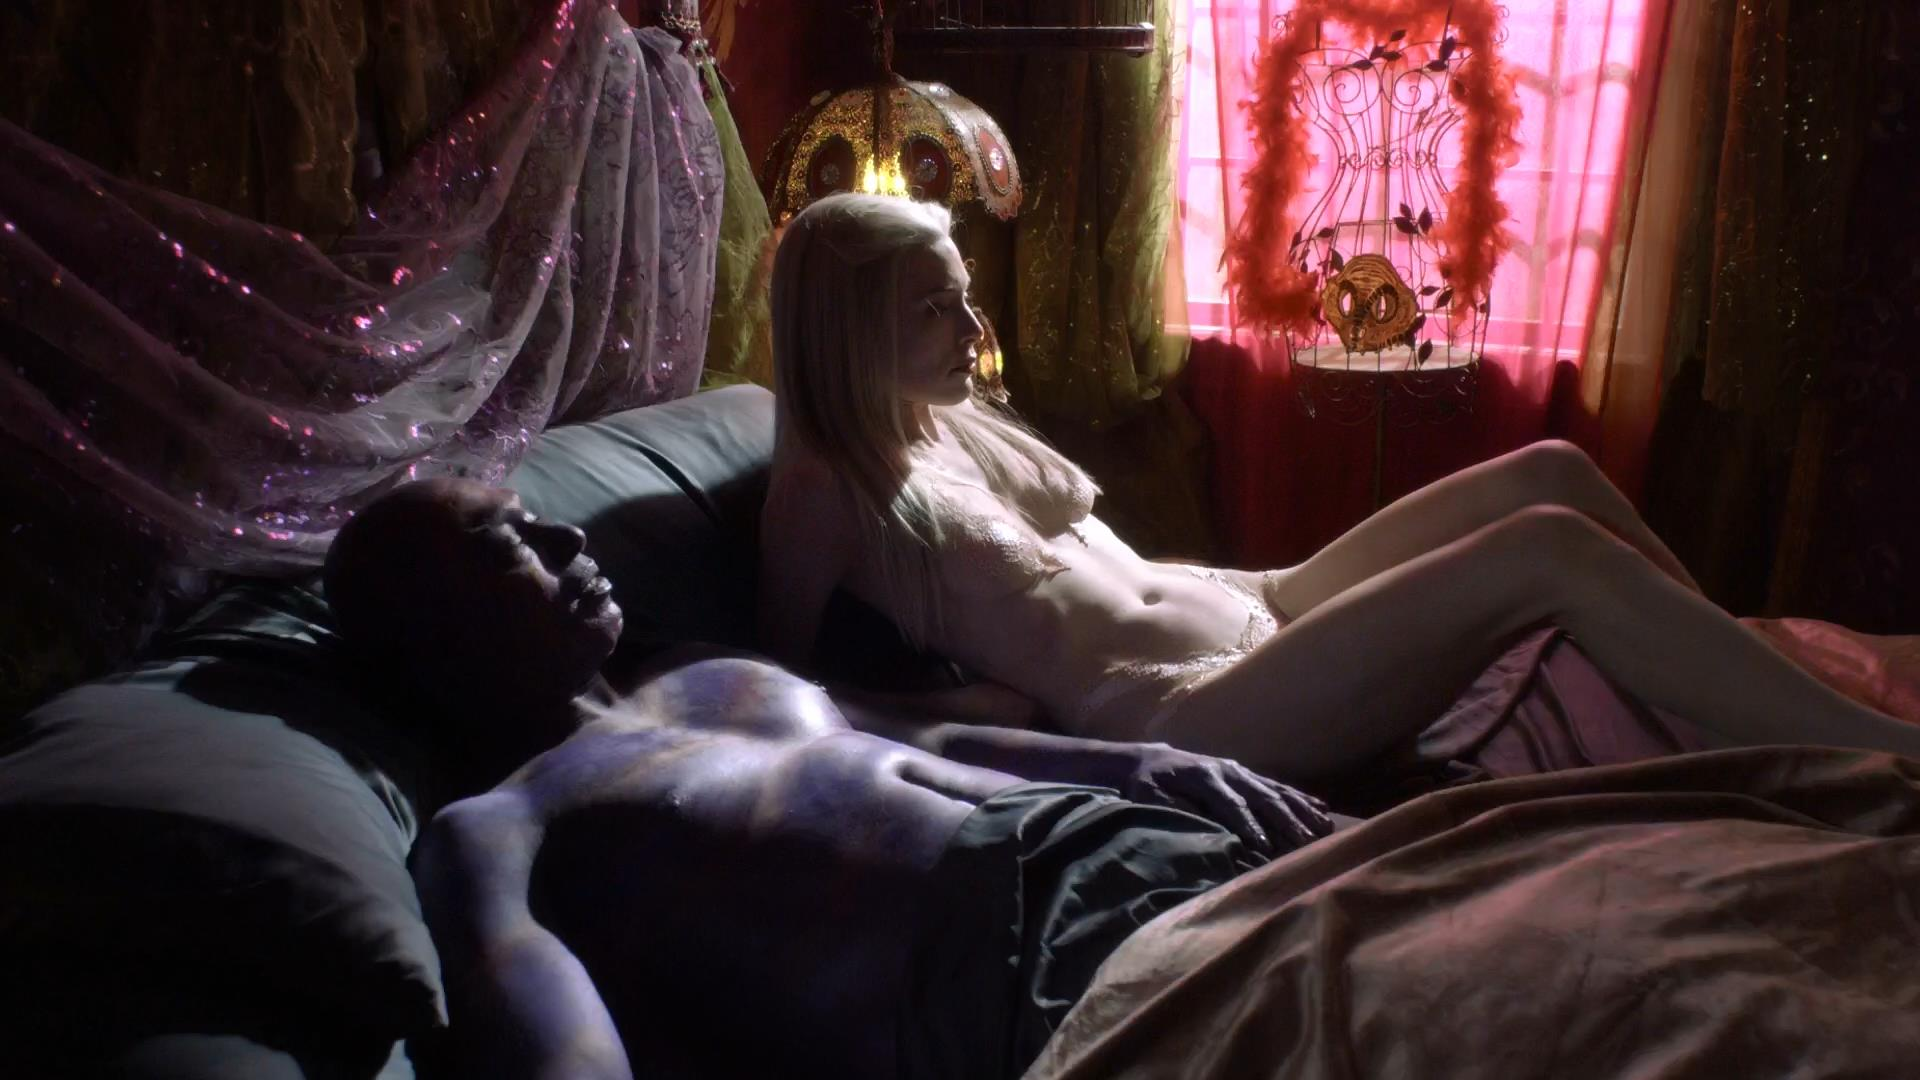 Naked Jaime Murray in Defiance